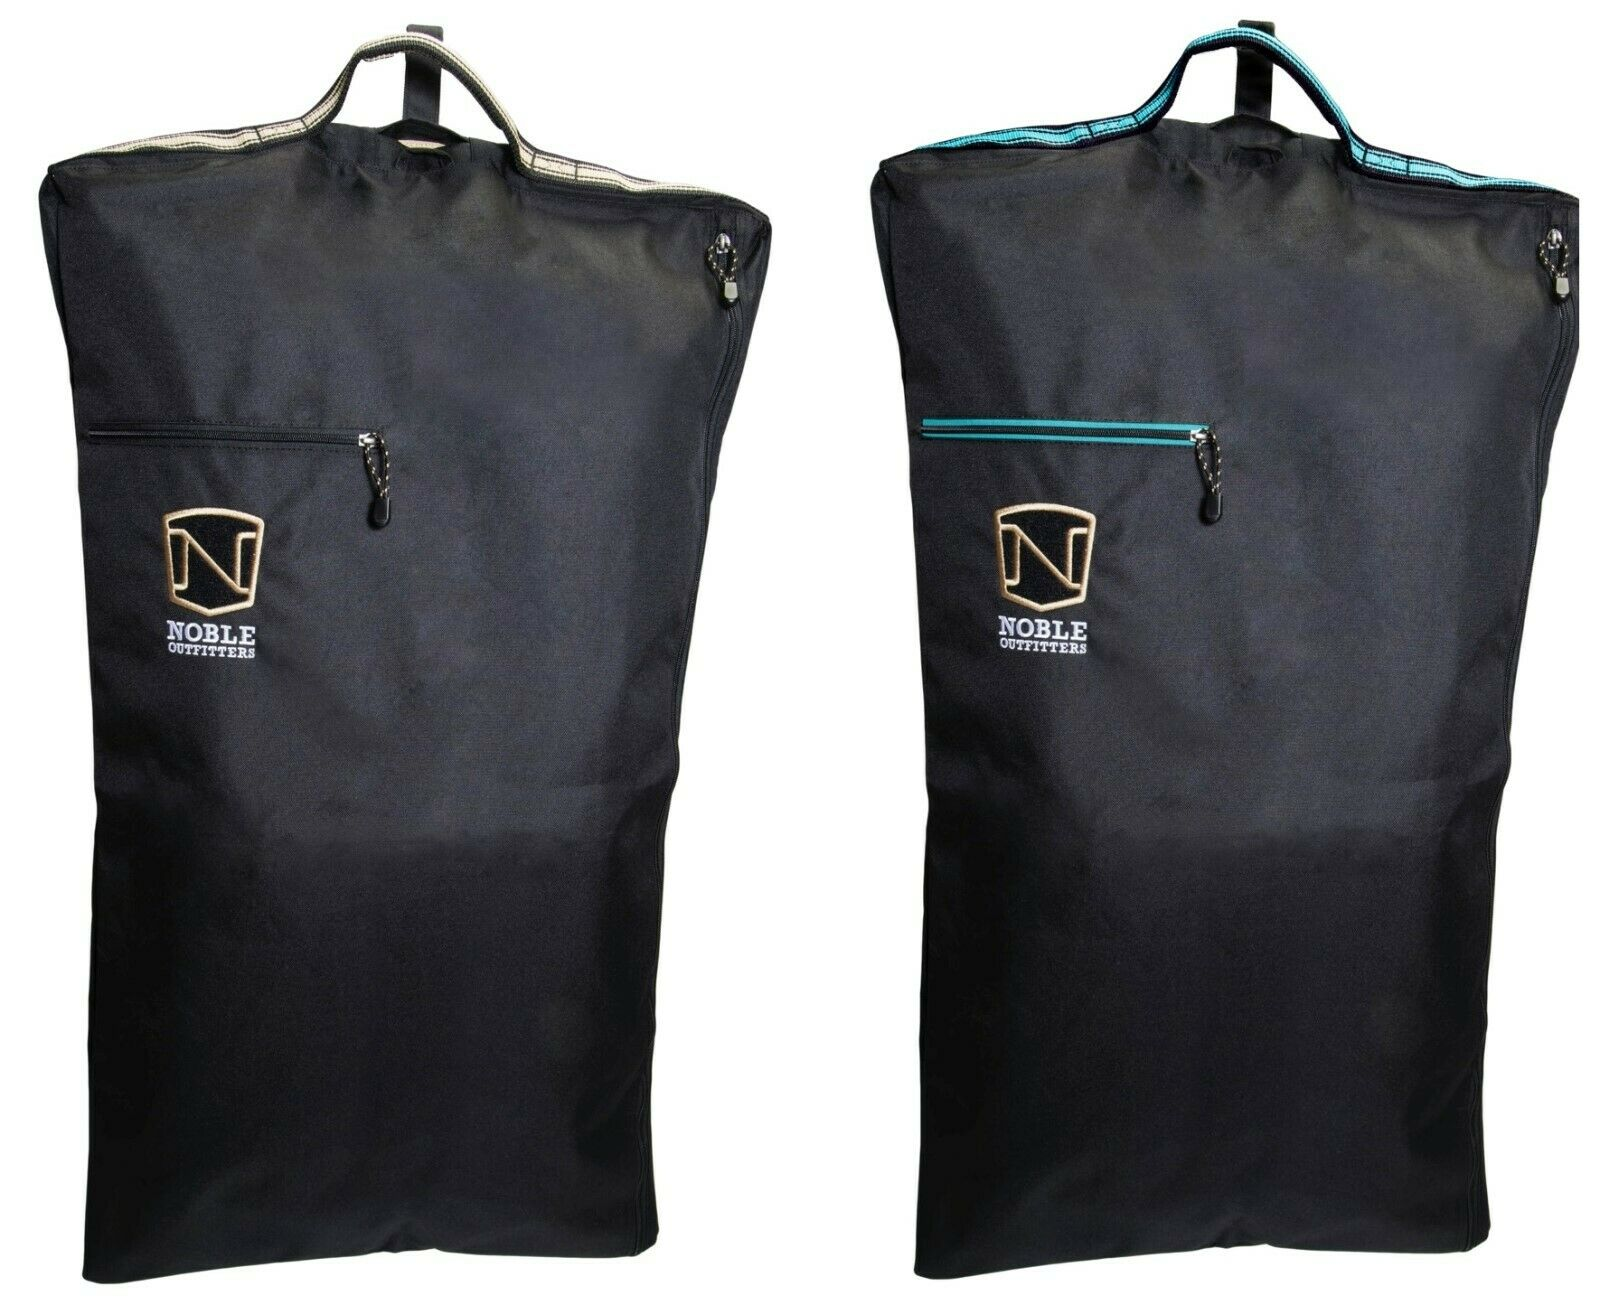 Noble Outfitters Show Ready Garment Bag Horse Equine Equipment Tote Bag